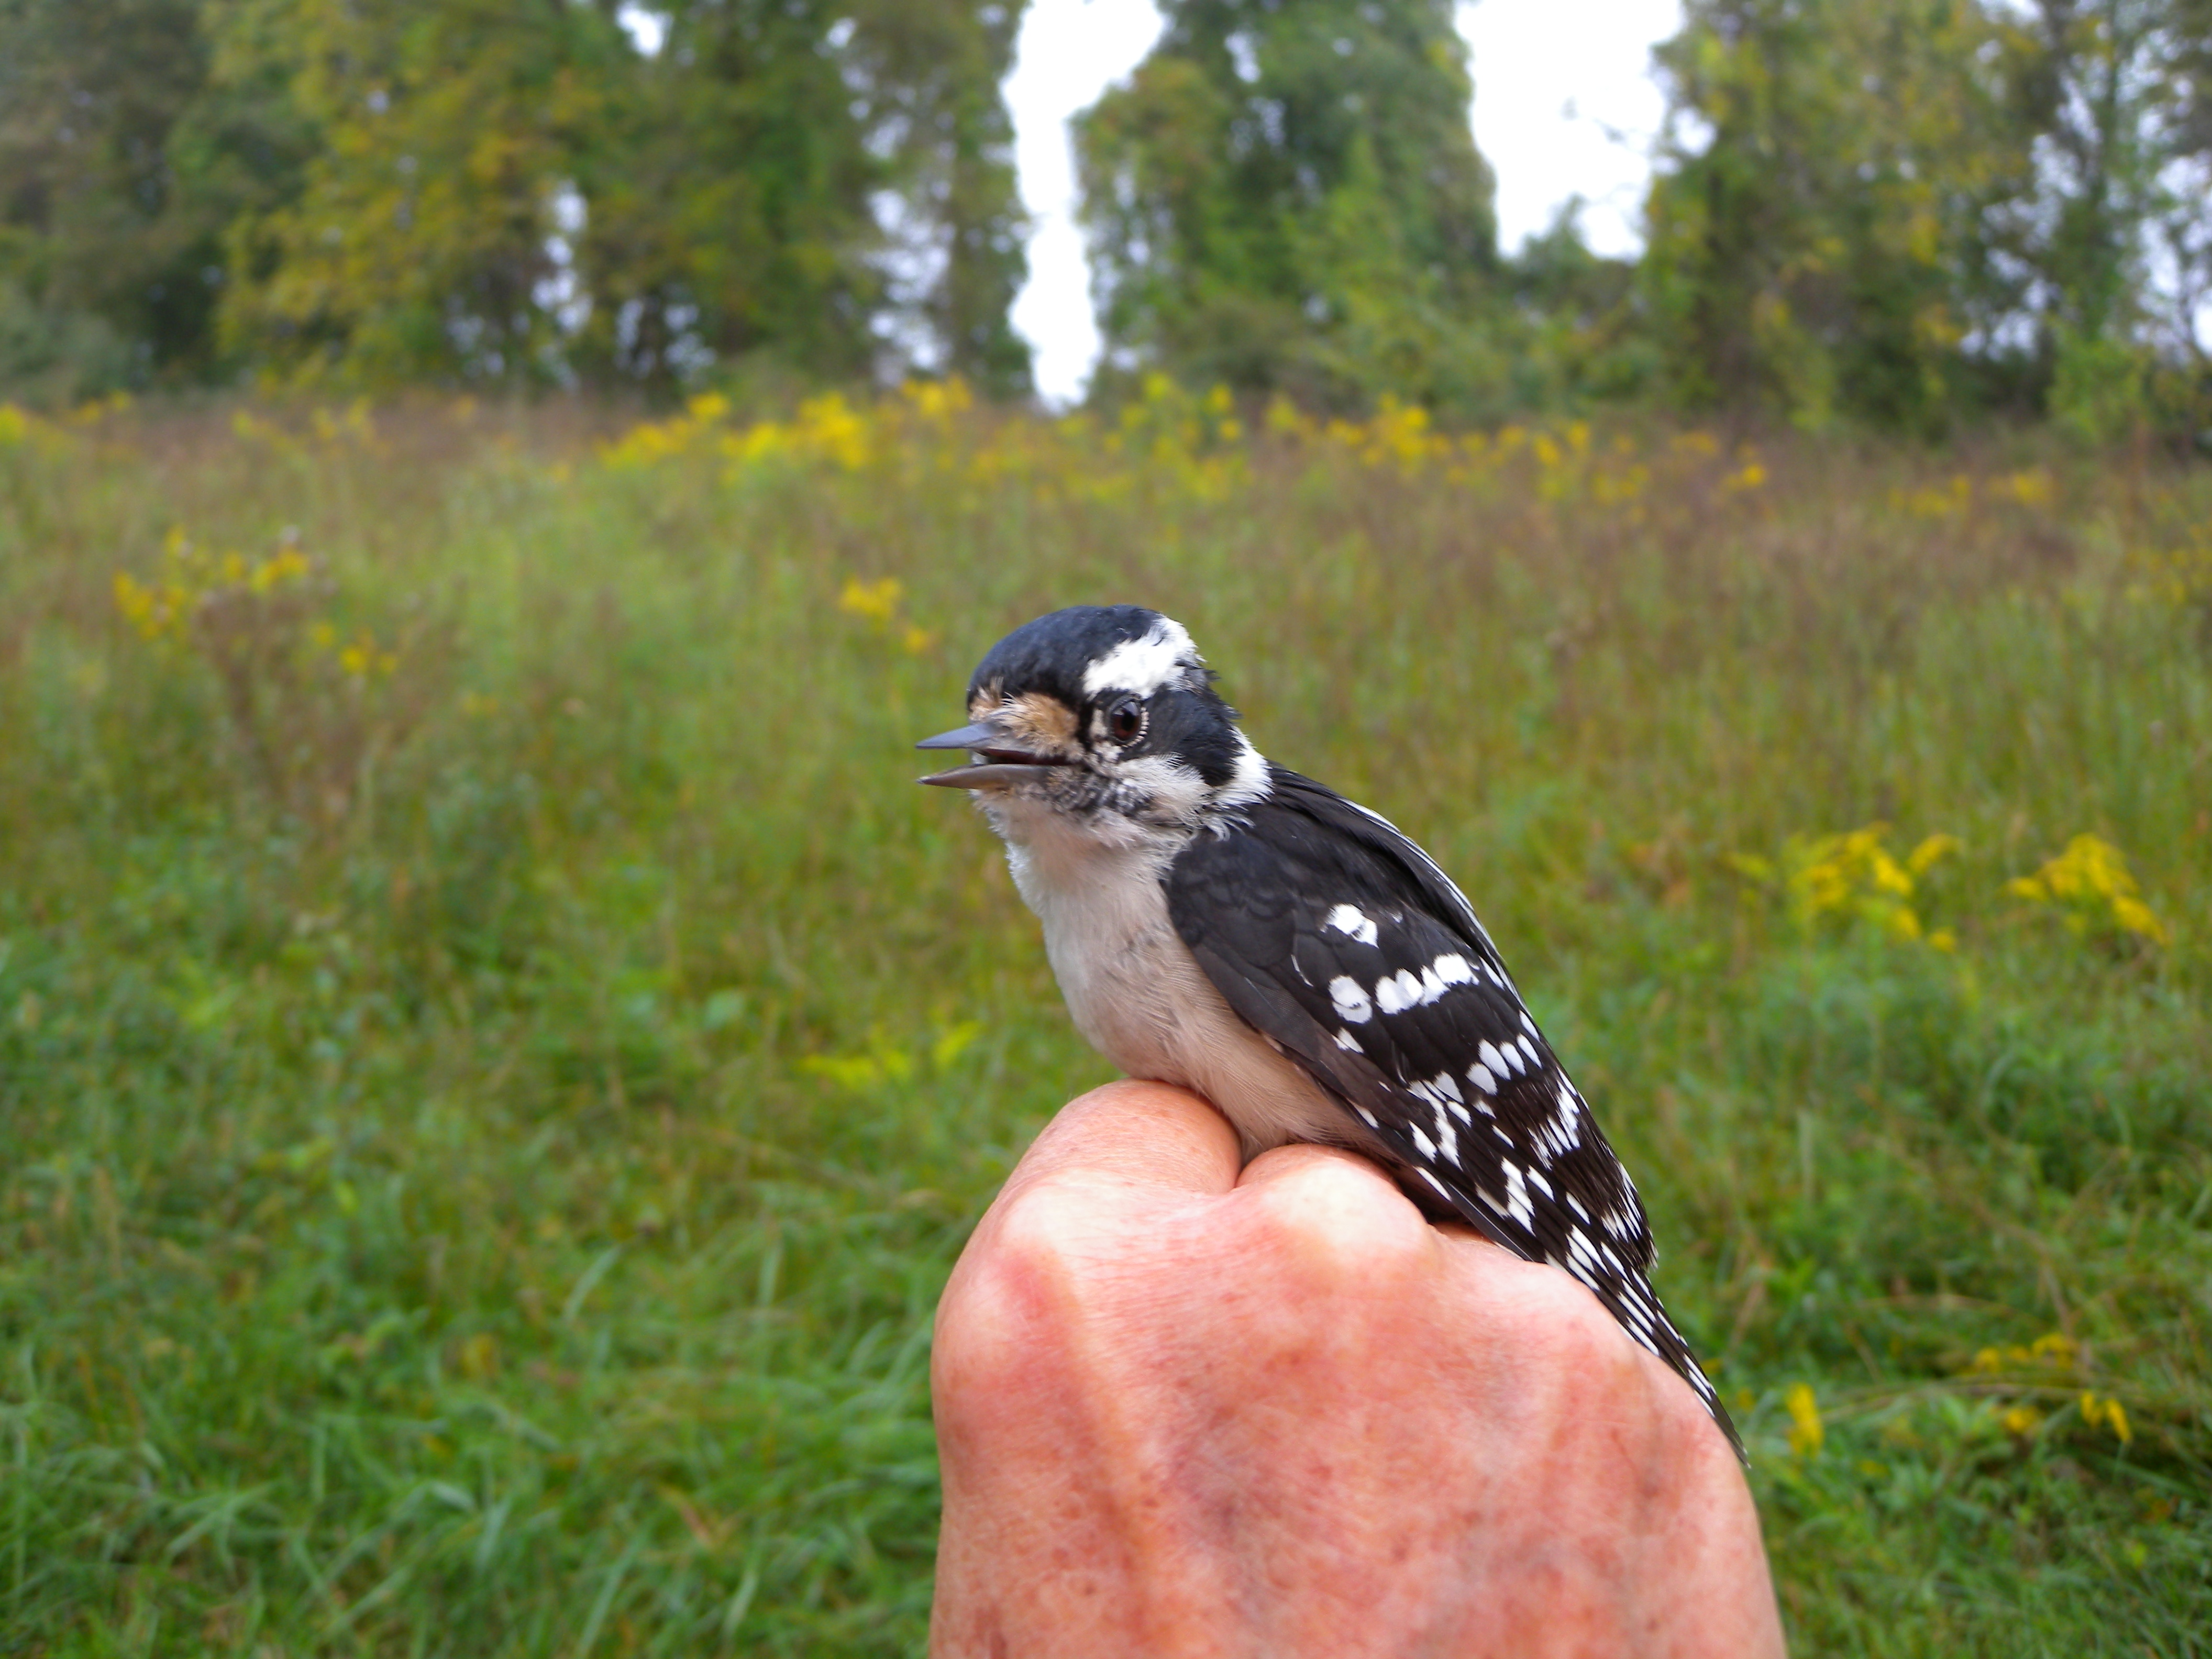 Young Downy Woodpecker in Rushton's Early Successional Scrub habitat in fall.